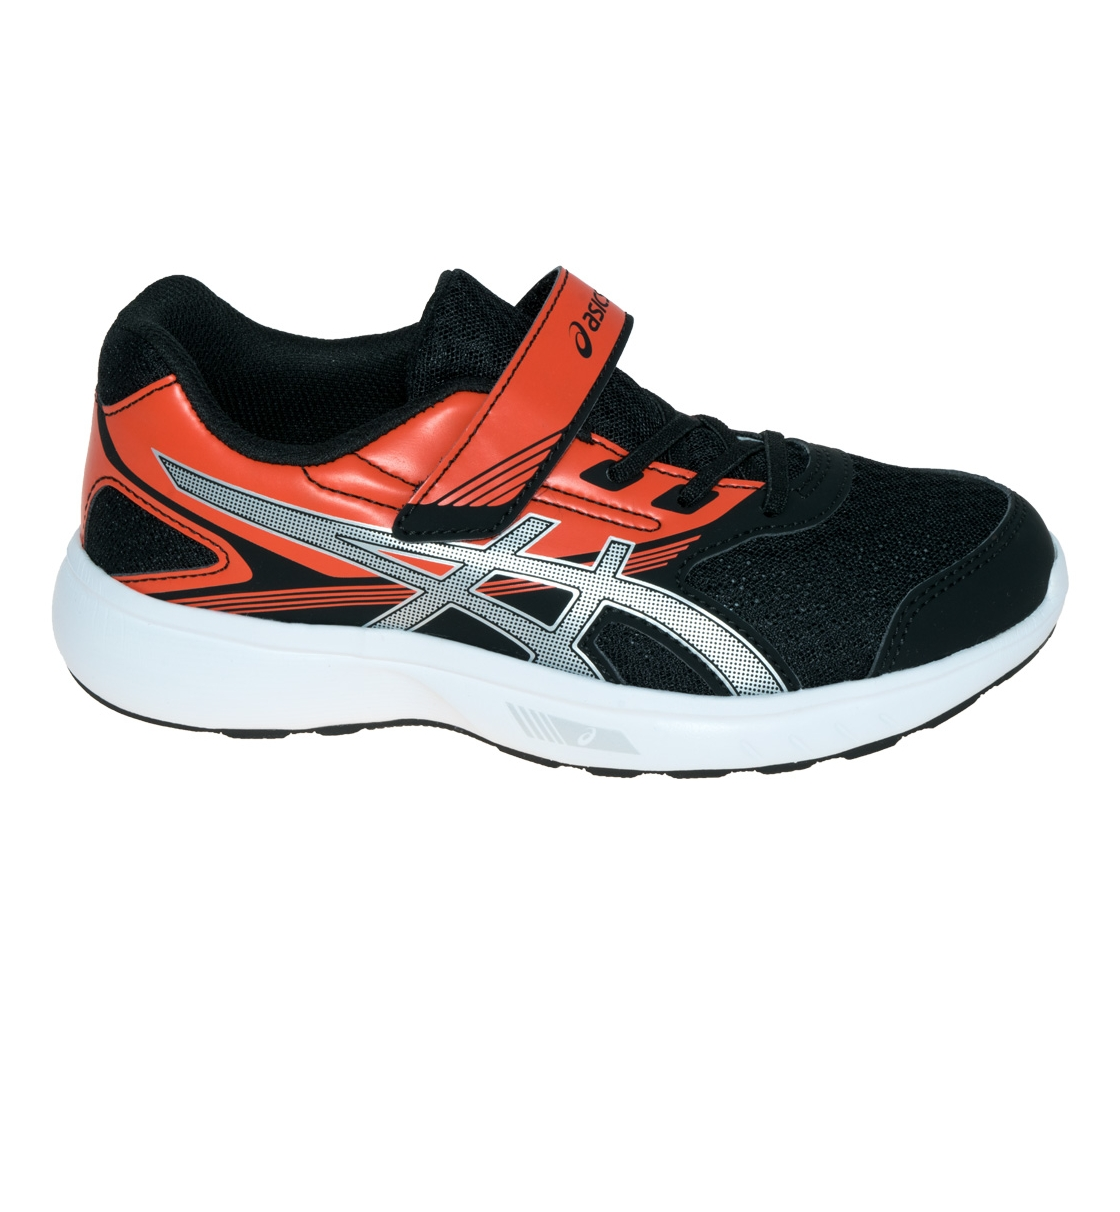 Asics Παιδικό Παπούτσι Running Stormer Ps C725N